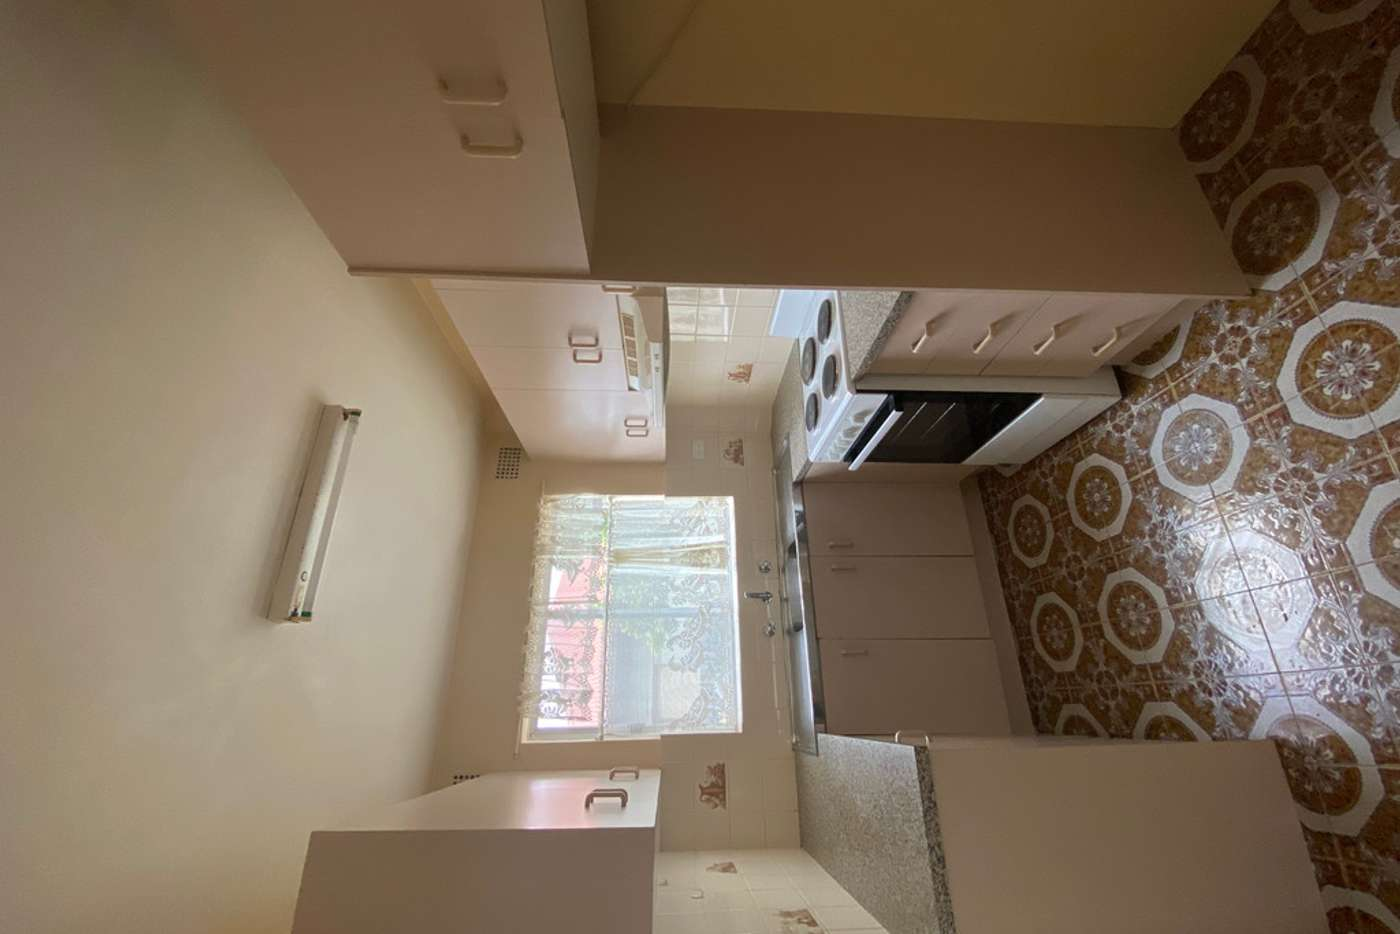 Main view of Homely unit listing, 1/207 Church Street, Wollongong NSW 2500